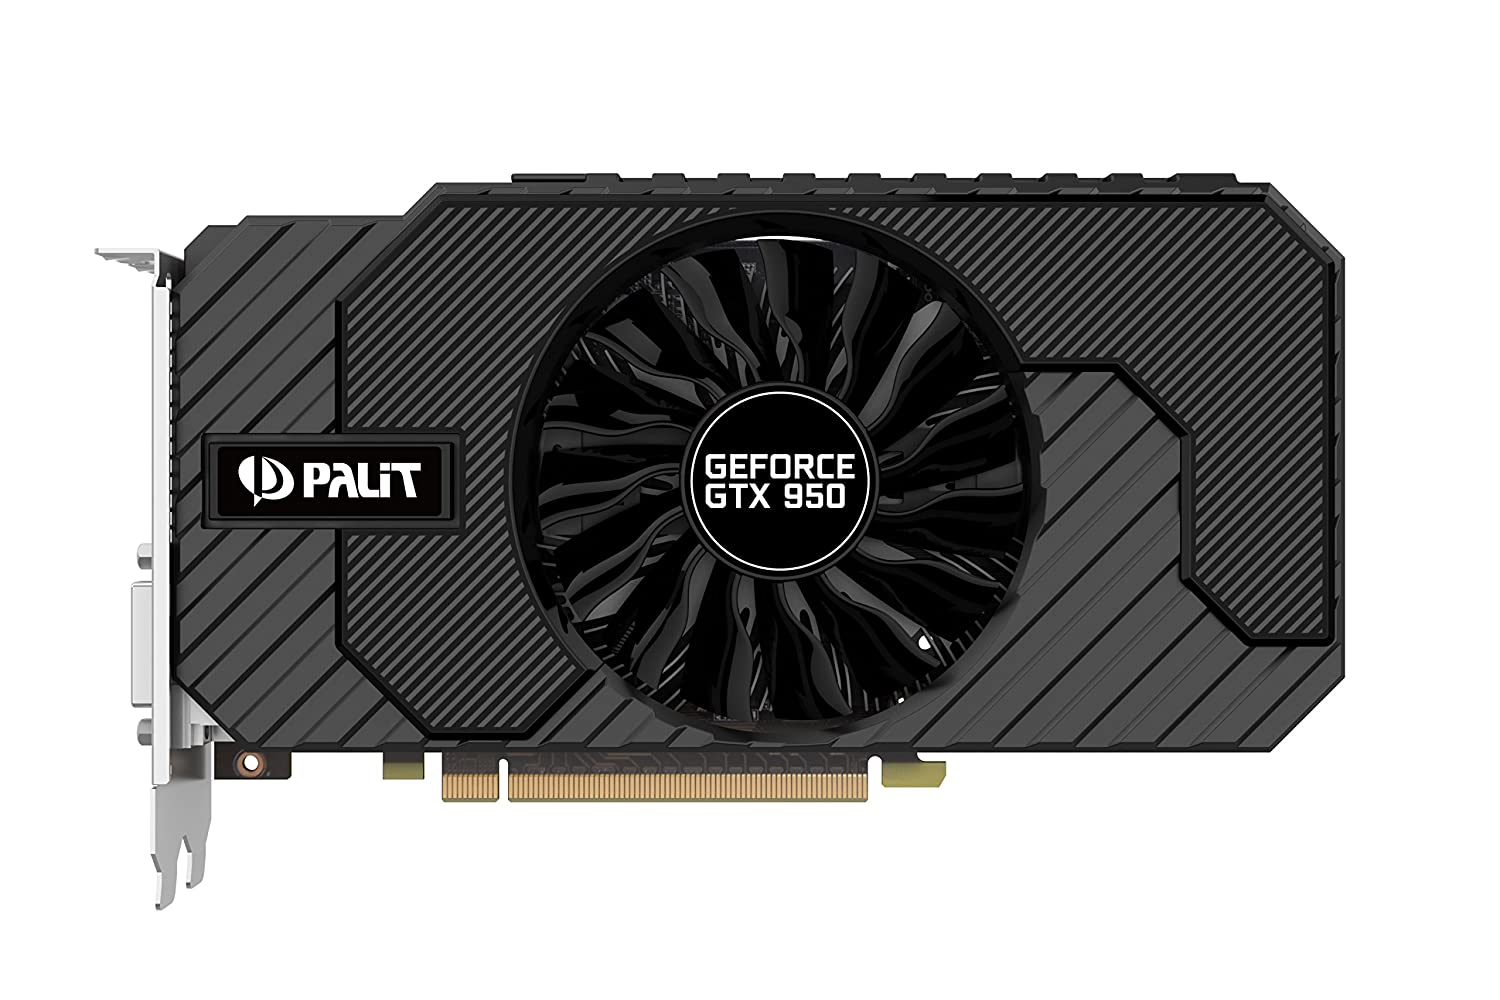 Palit GeForce GTX950 StormX OC 2GB - Tarjeta Grafica, Color ...